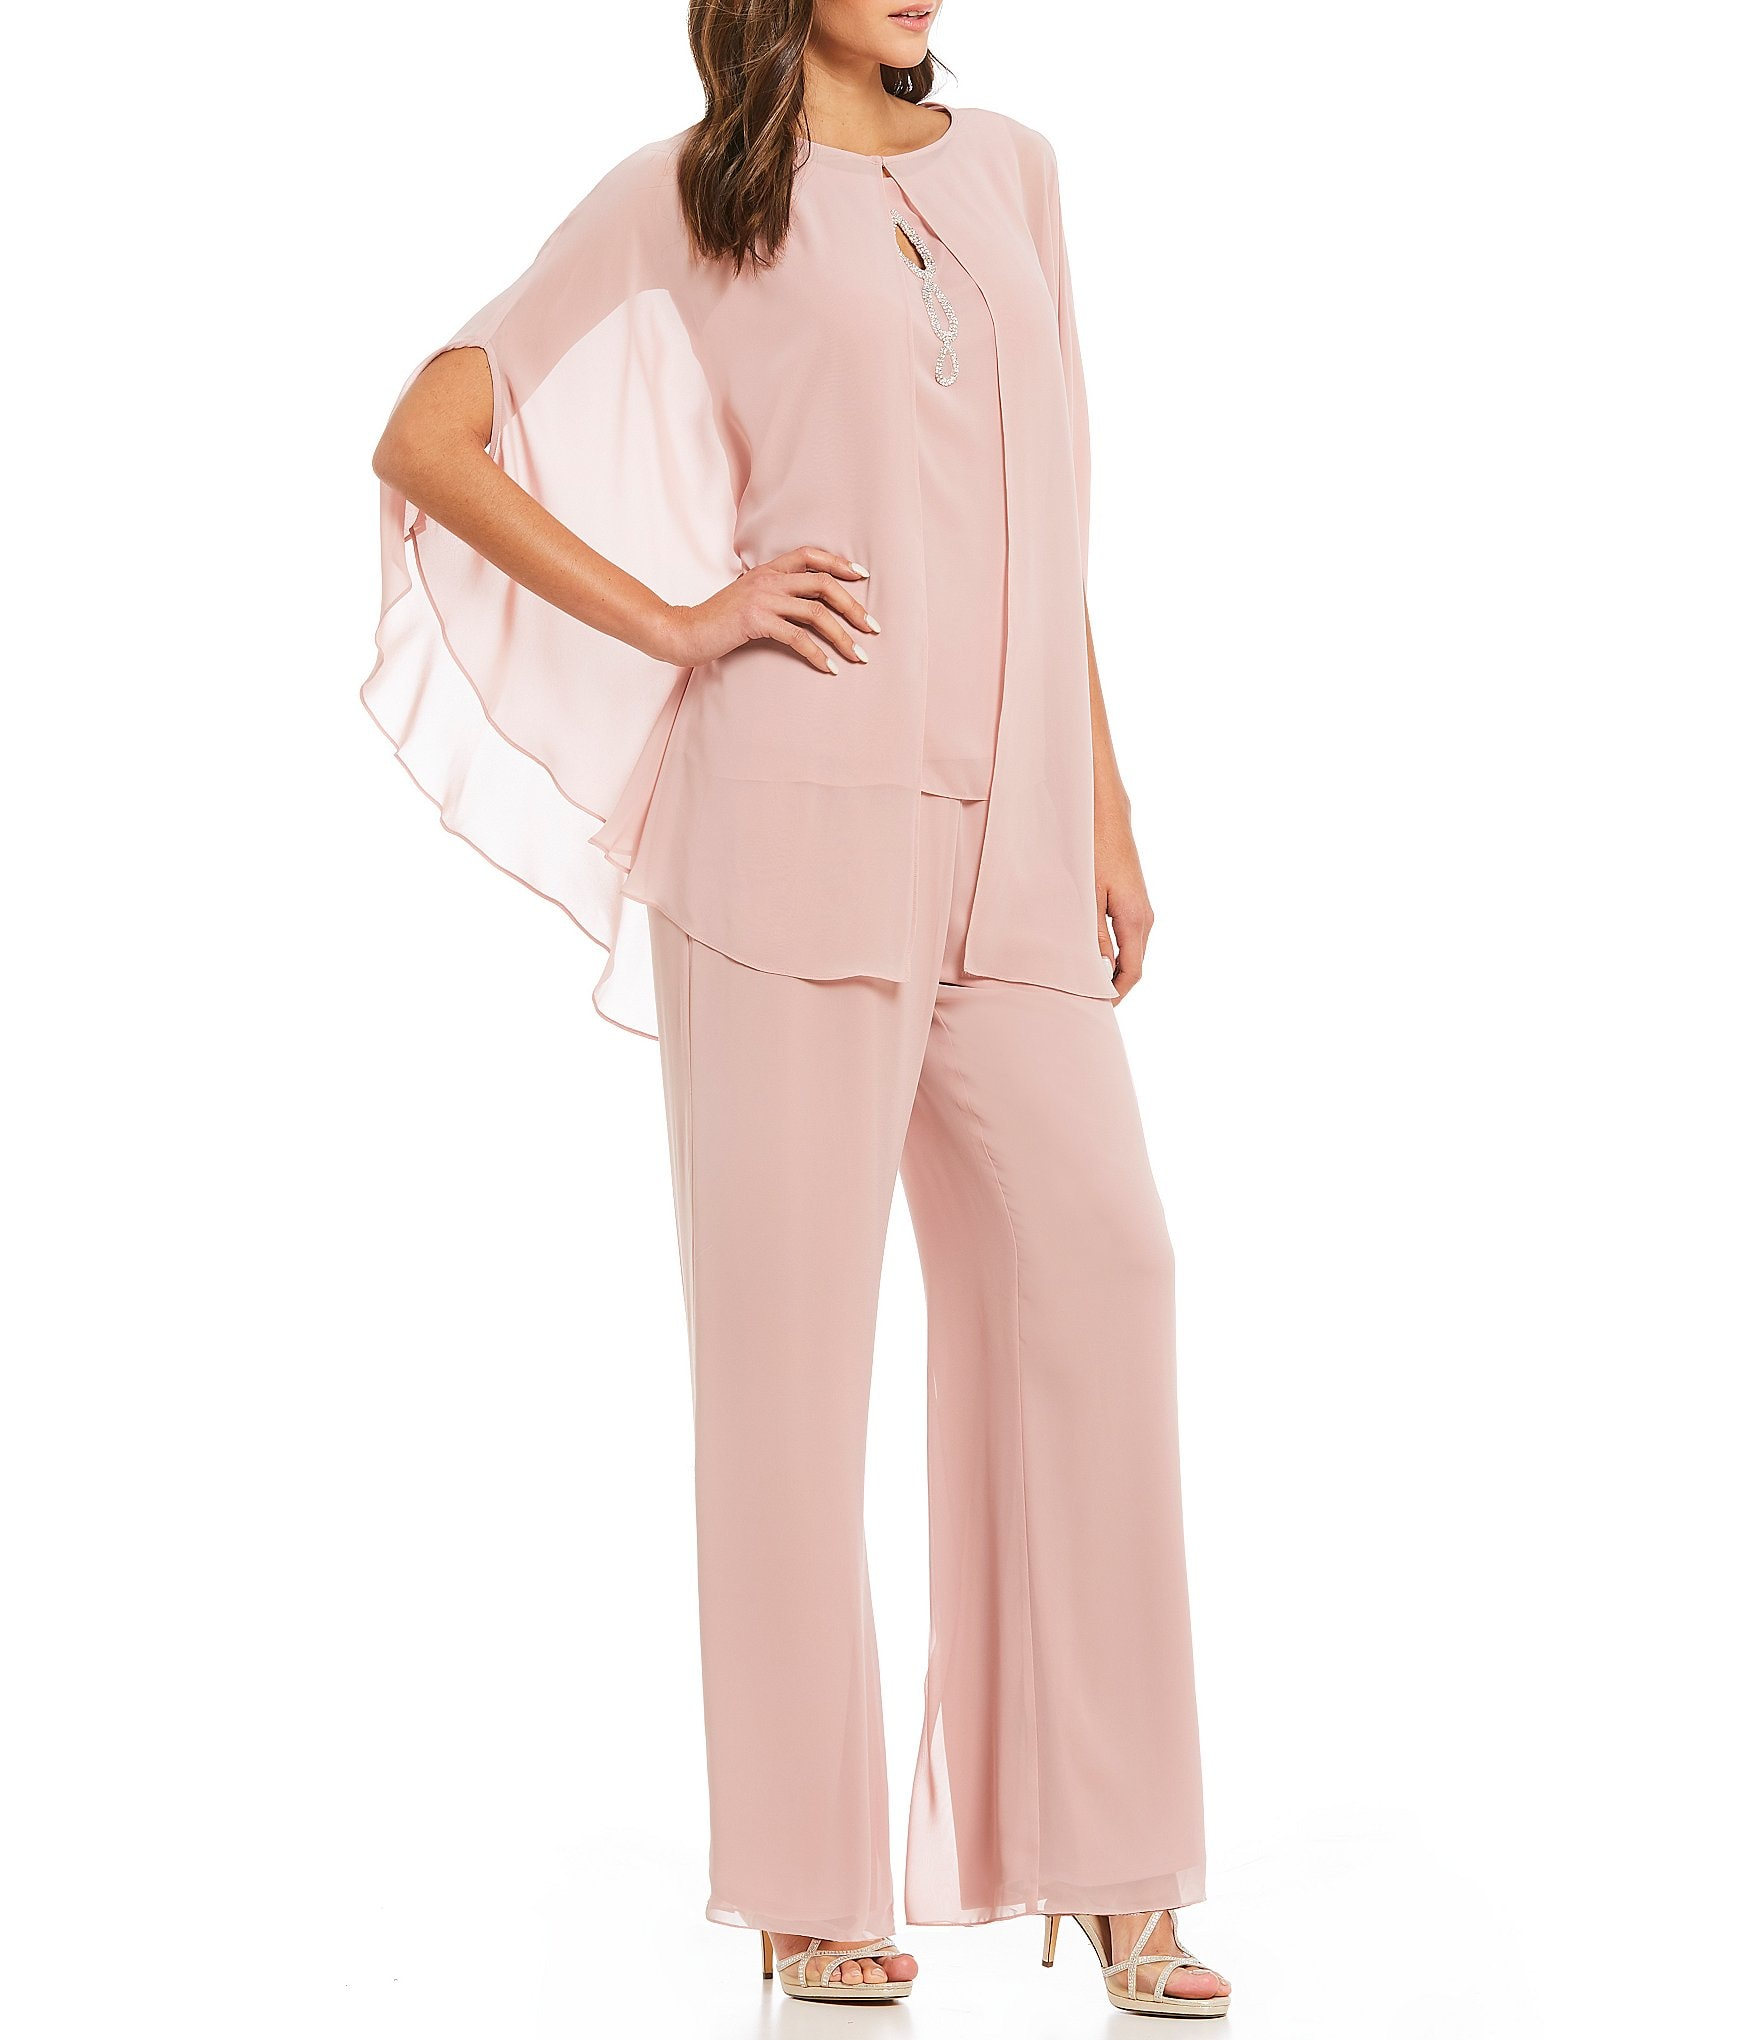 Rose pink dress pants